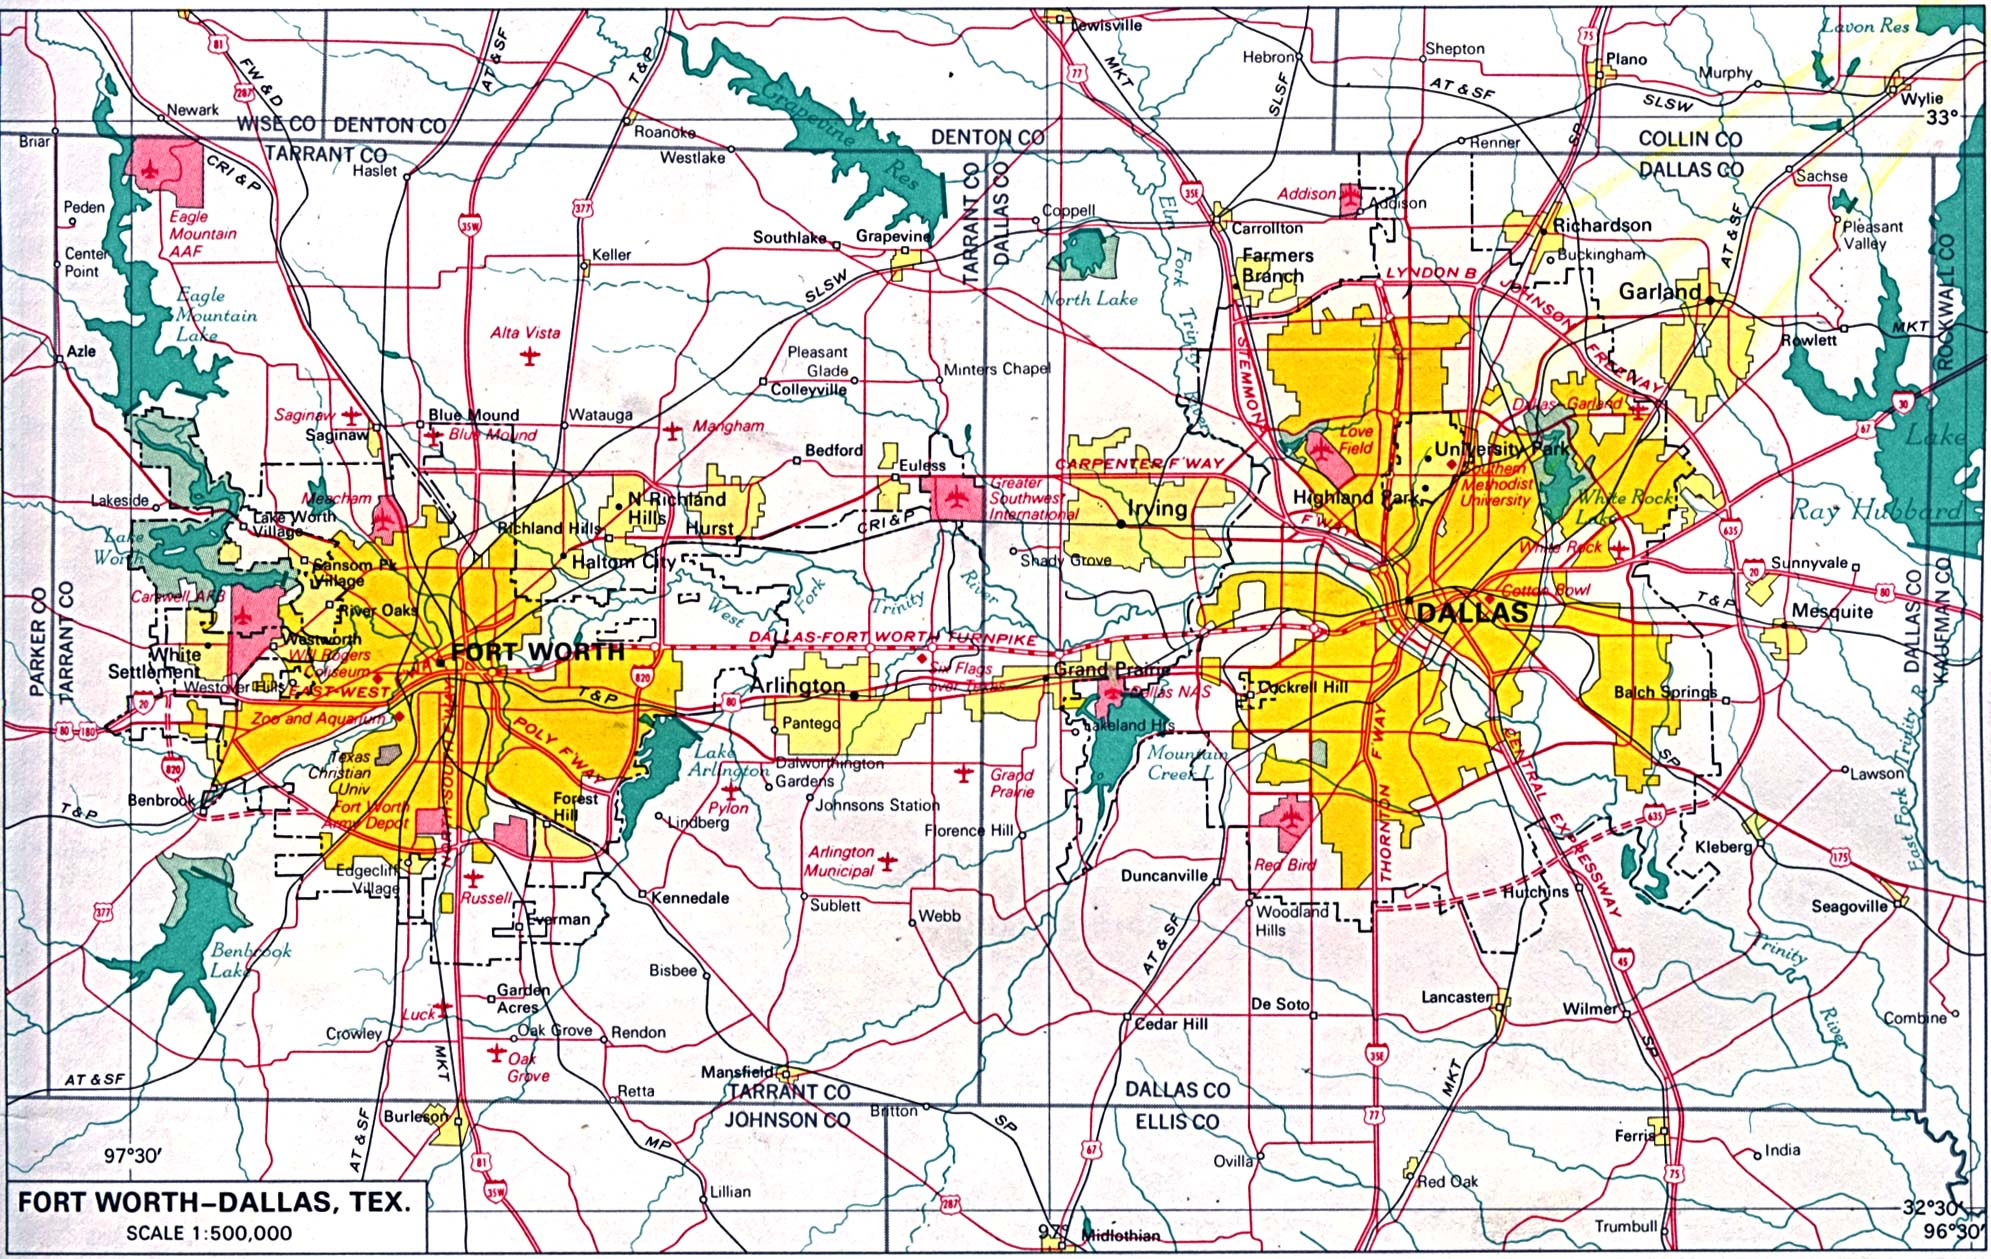 ft sam houston map with 681643 Dallas Largest Metro South Wheres Respect 9 on Wards of Houston further Default additionally 3724 besides Stafford further Ft Sam Houston Map.